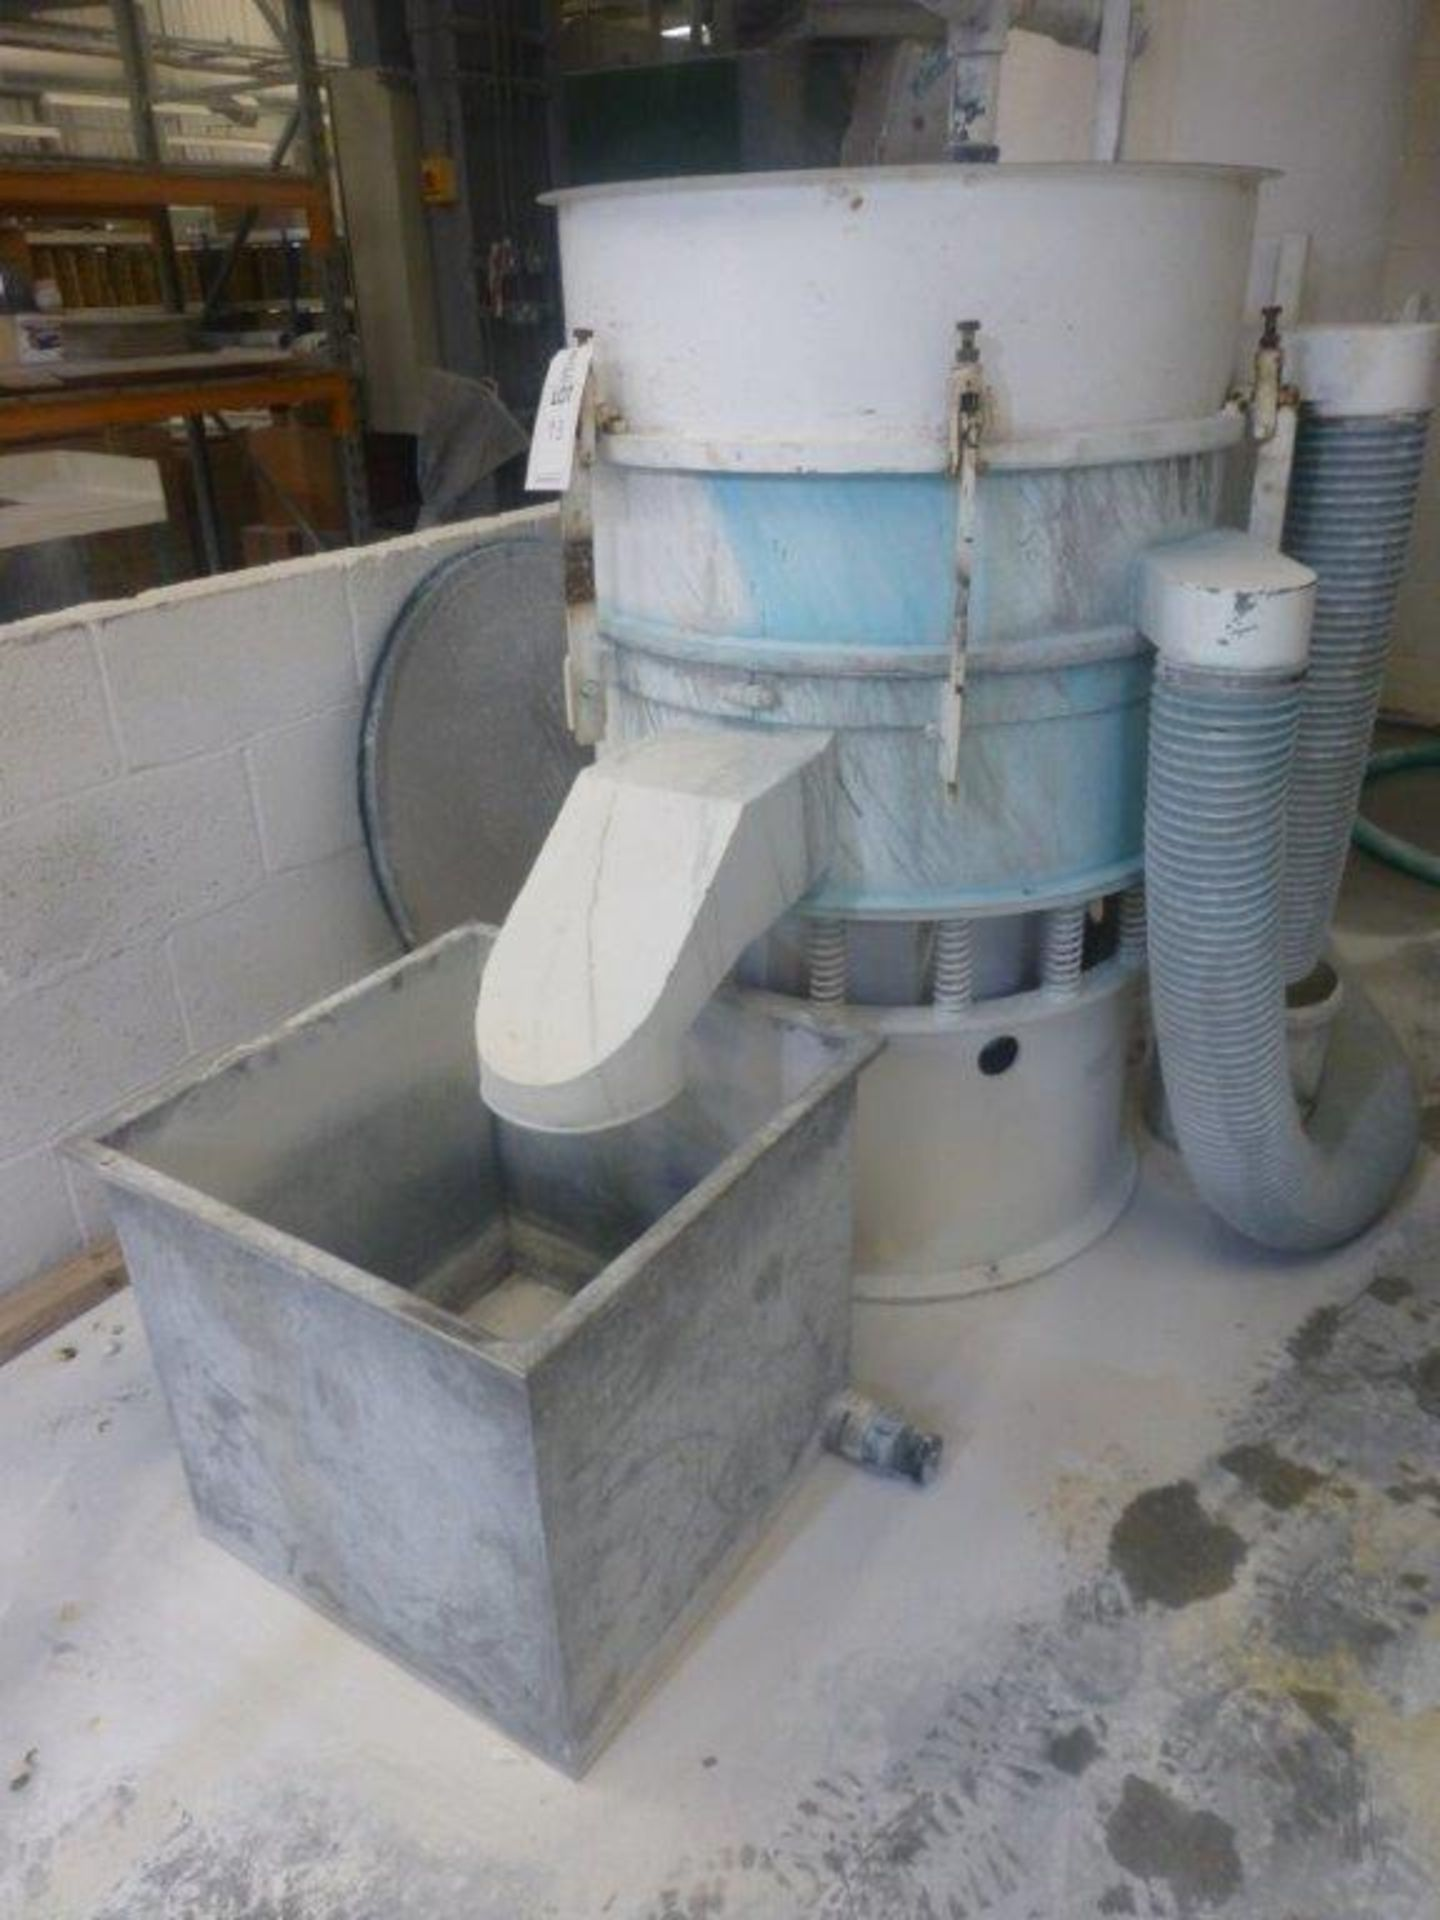 Lot 93 - 850mm diameter vibratory sieve with spare screen